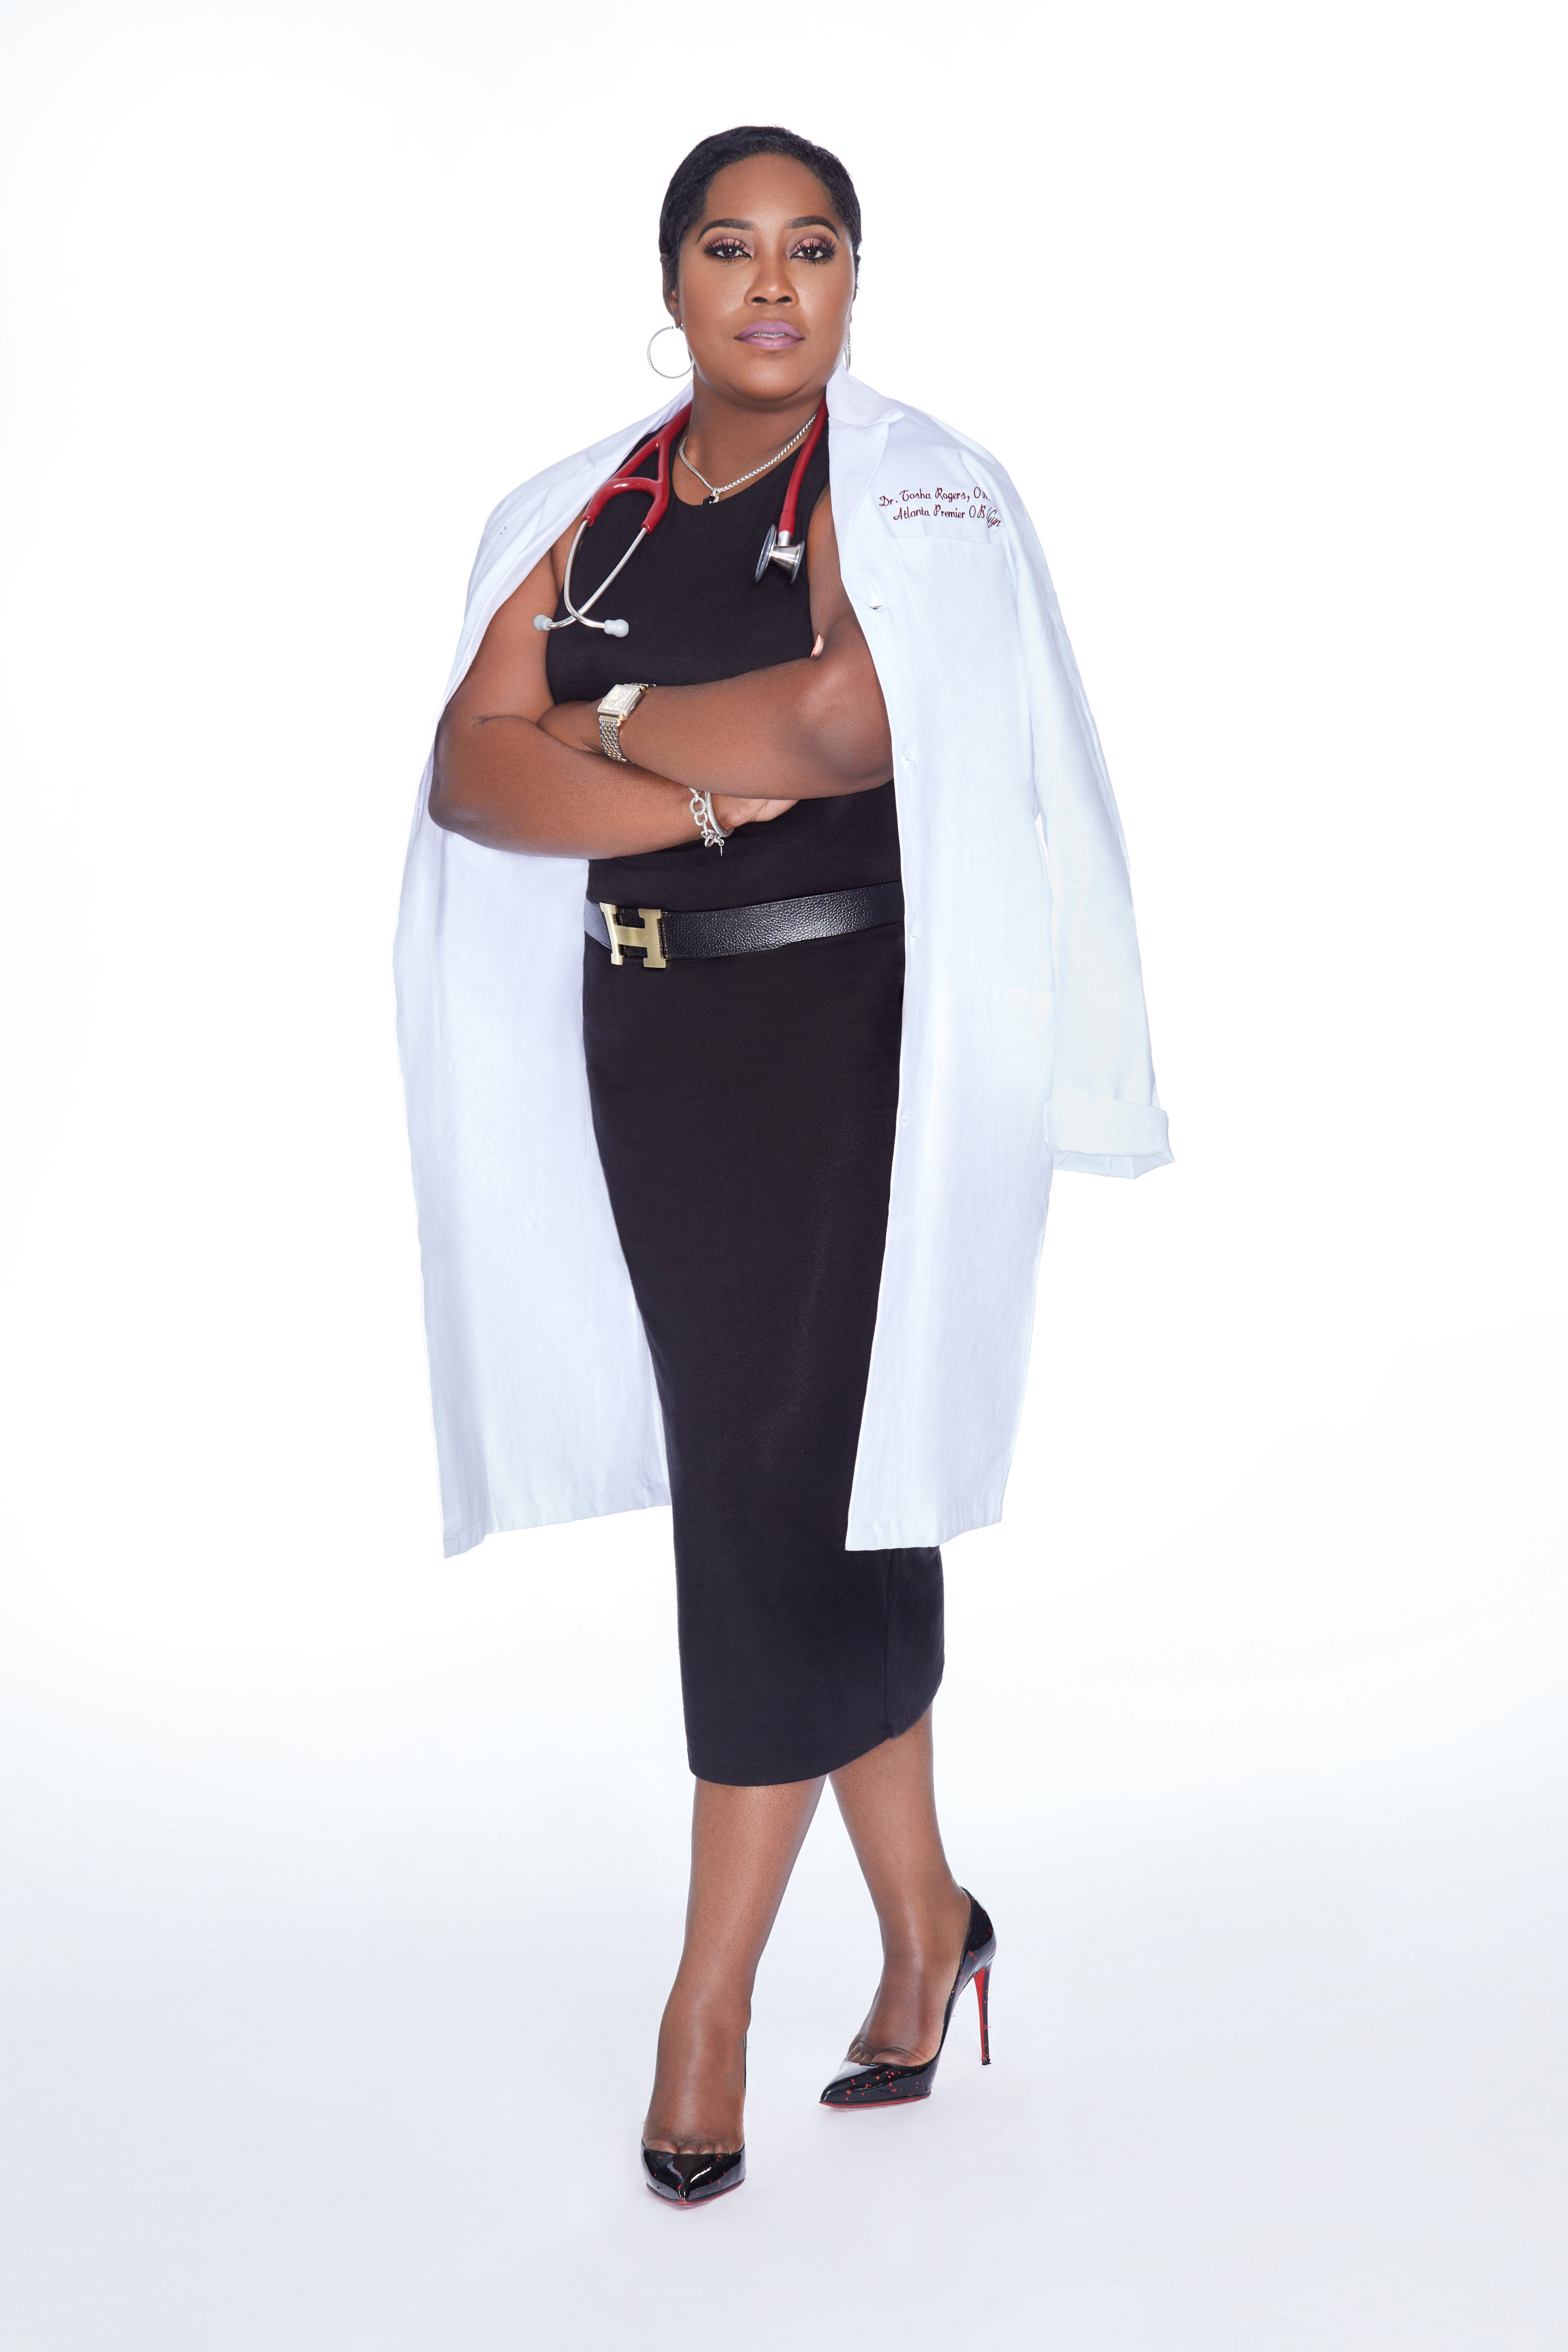 Dr-Tosha-with dr coat on.jpg